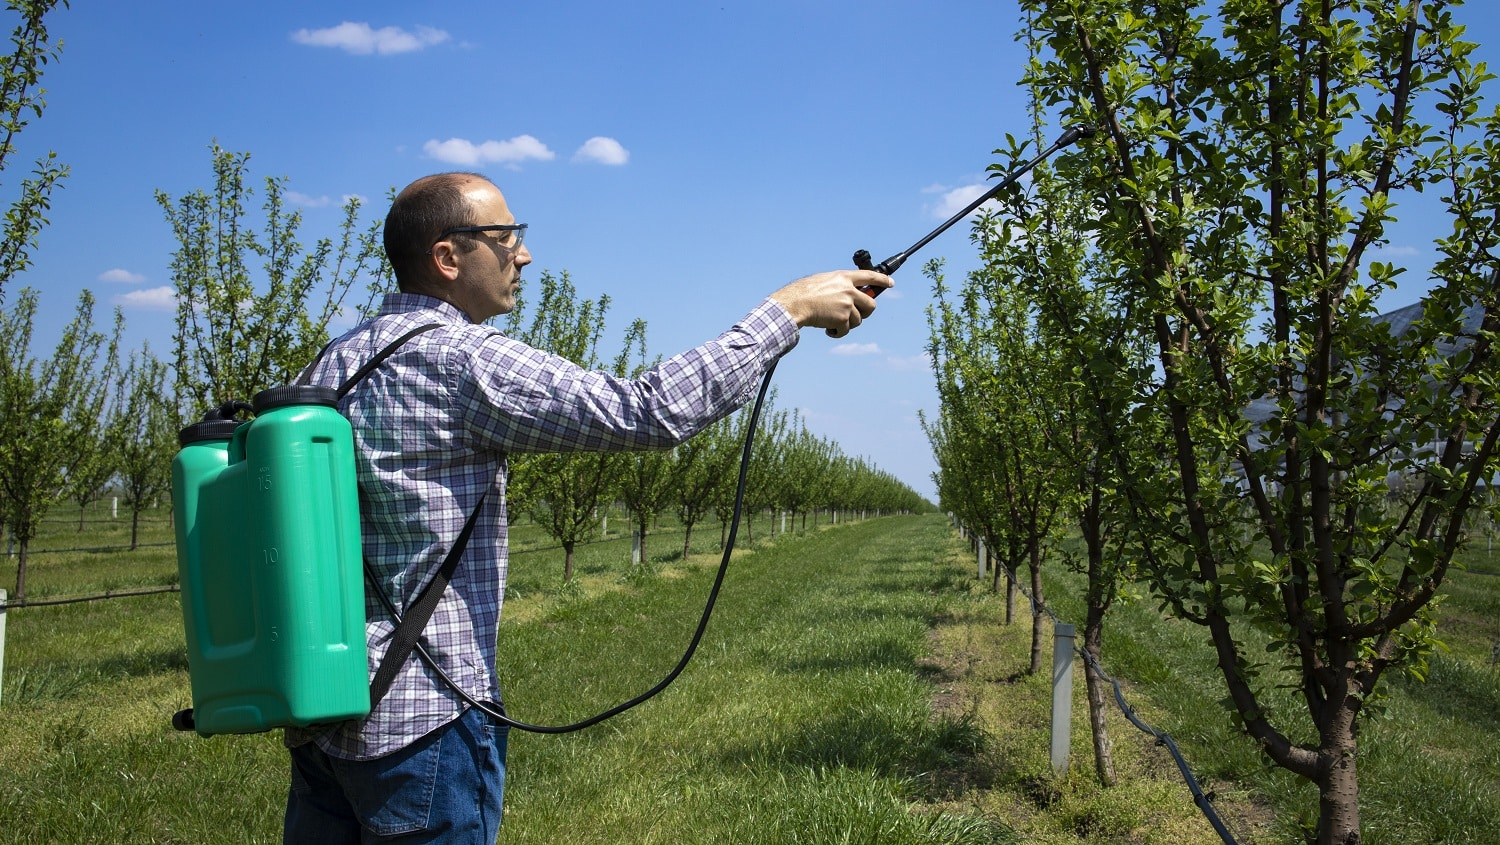 Man agronomist treating apple trees with pesticides in orchard.